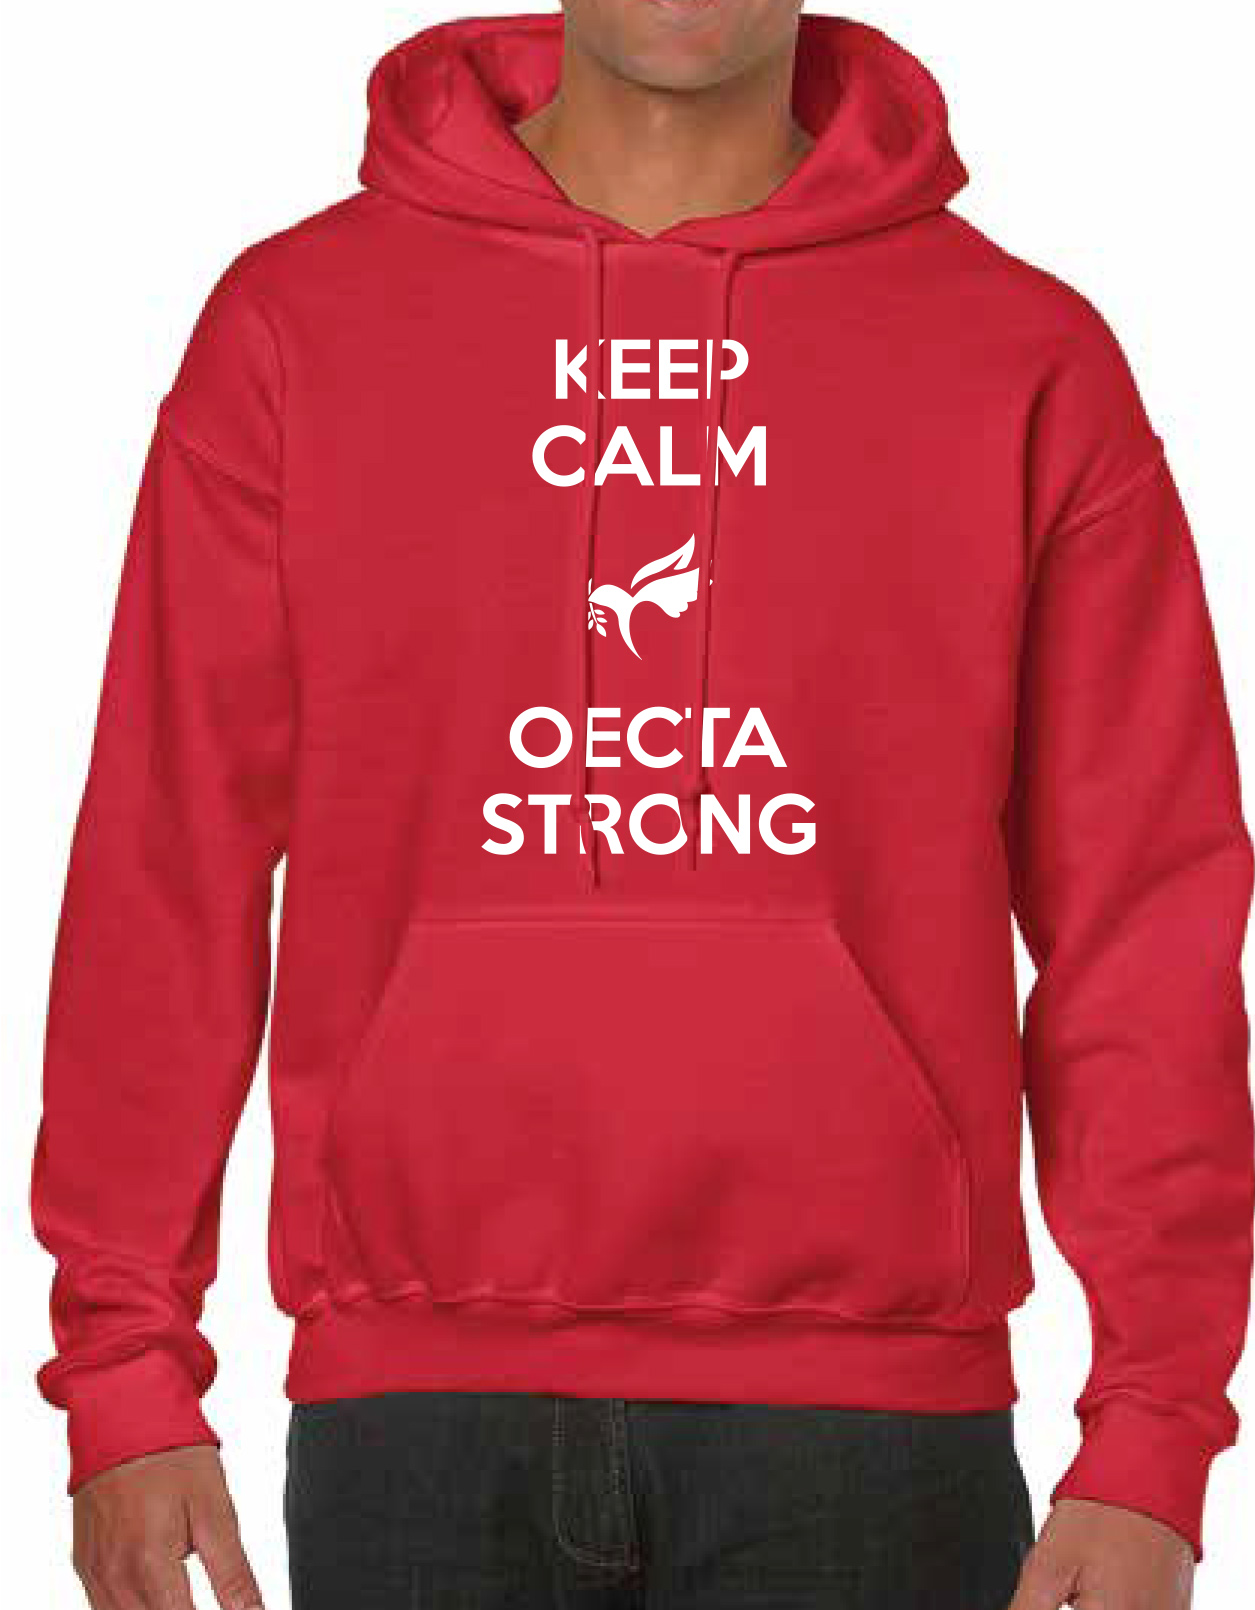 NEW! Wear Red for Ed - Keep Calm OECTA Strong Hoodie ($40 each)